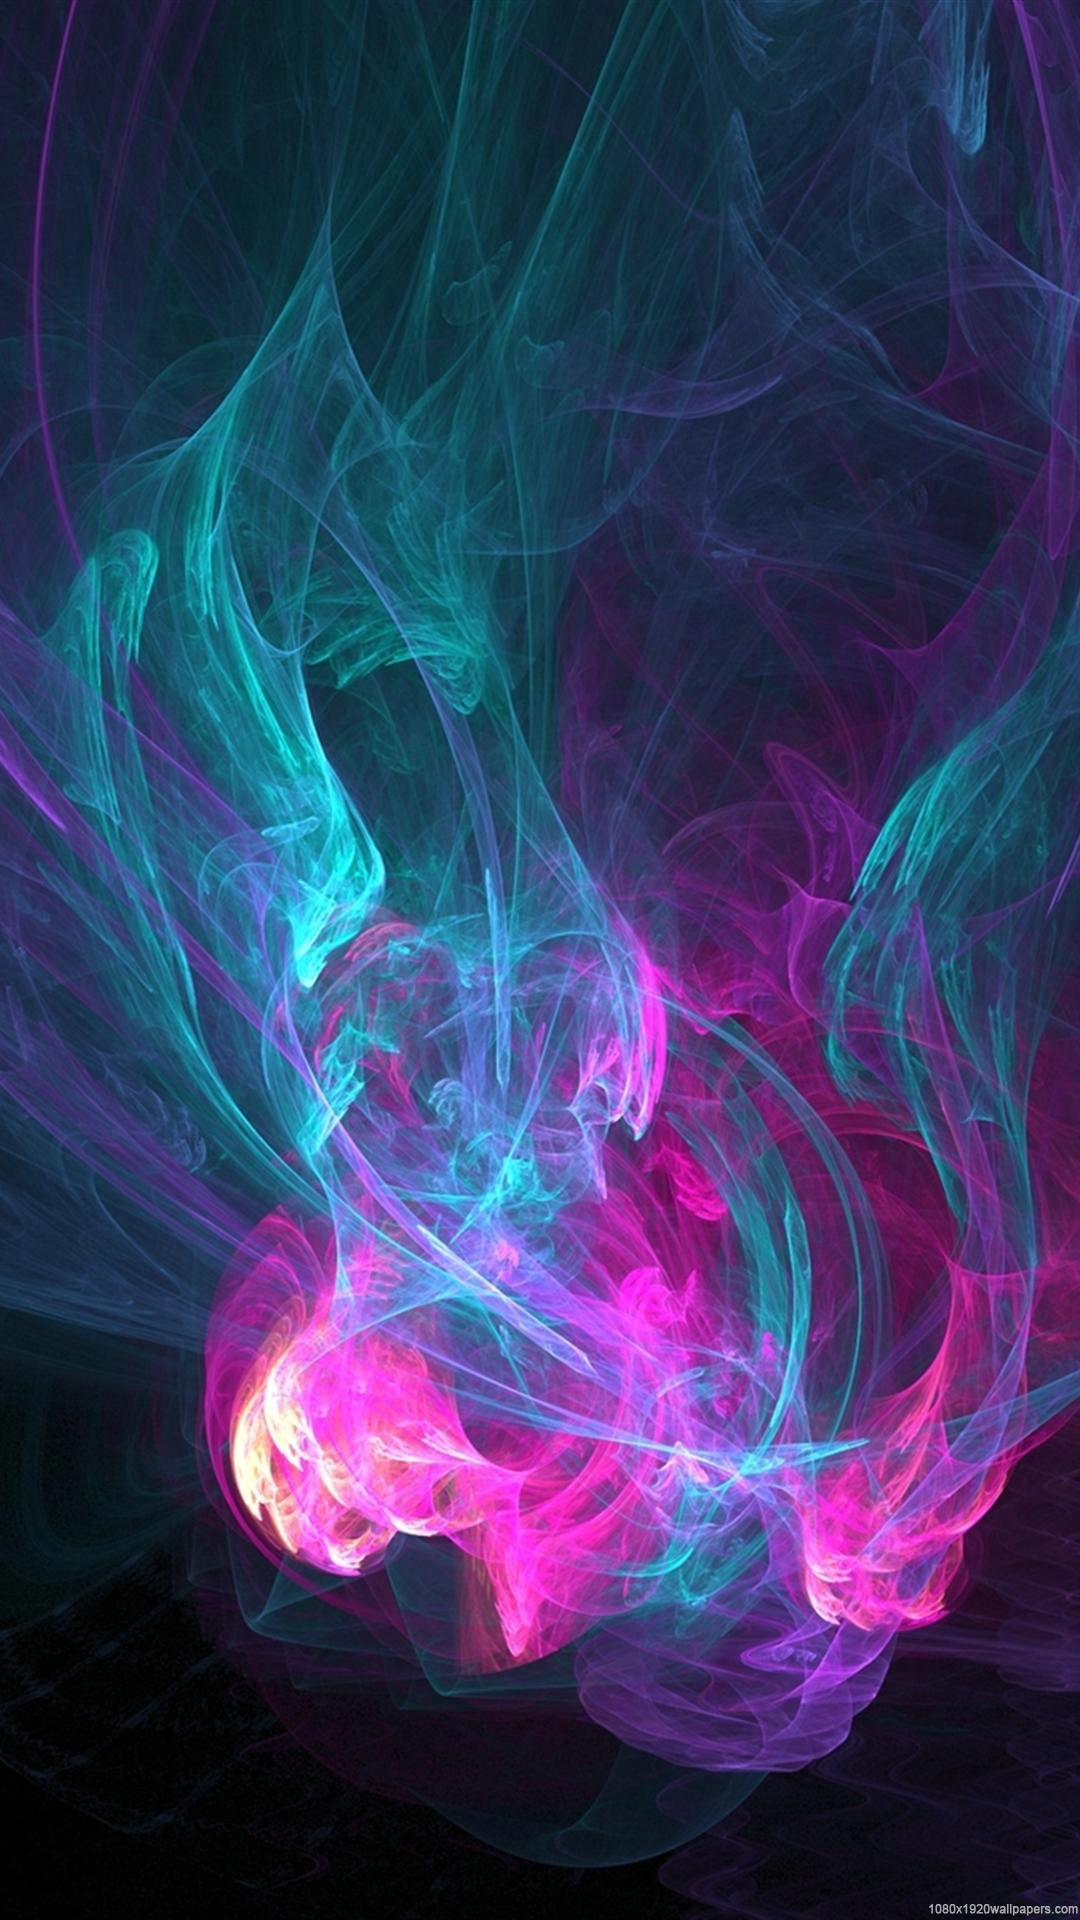 Abstract-Colored-Waves-1080x1920-Abstract-Need-iPhone-S-Plus-Background-for-IPh-wallpaper-wp3402132